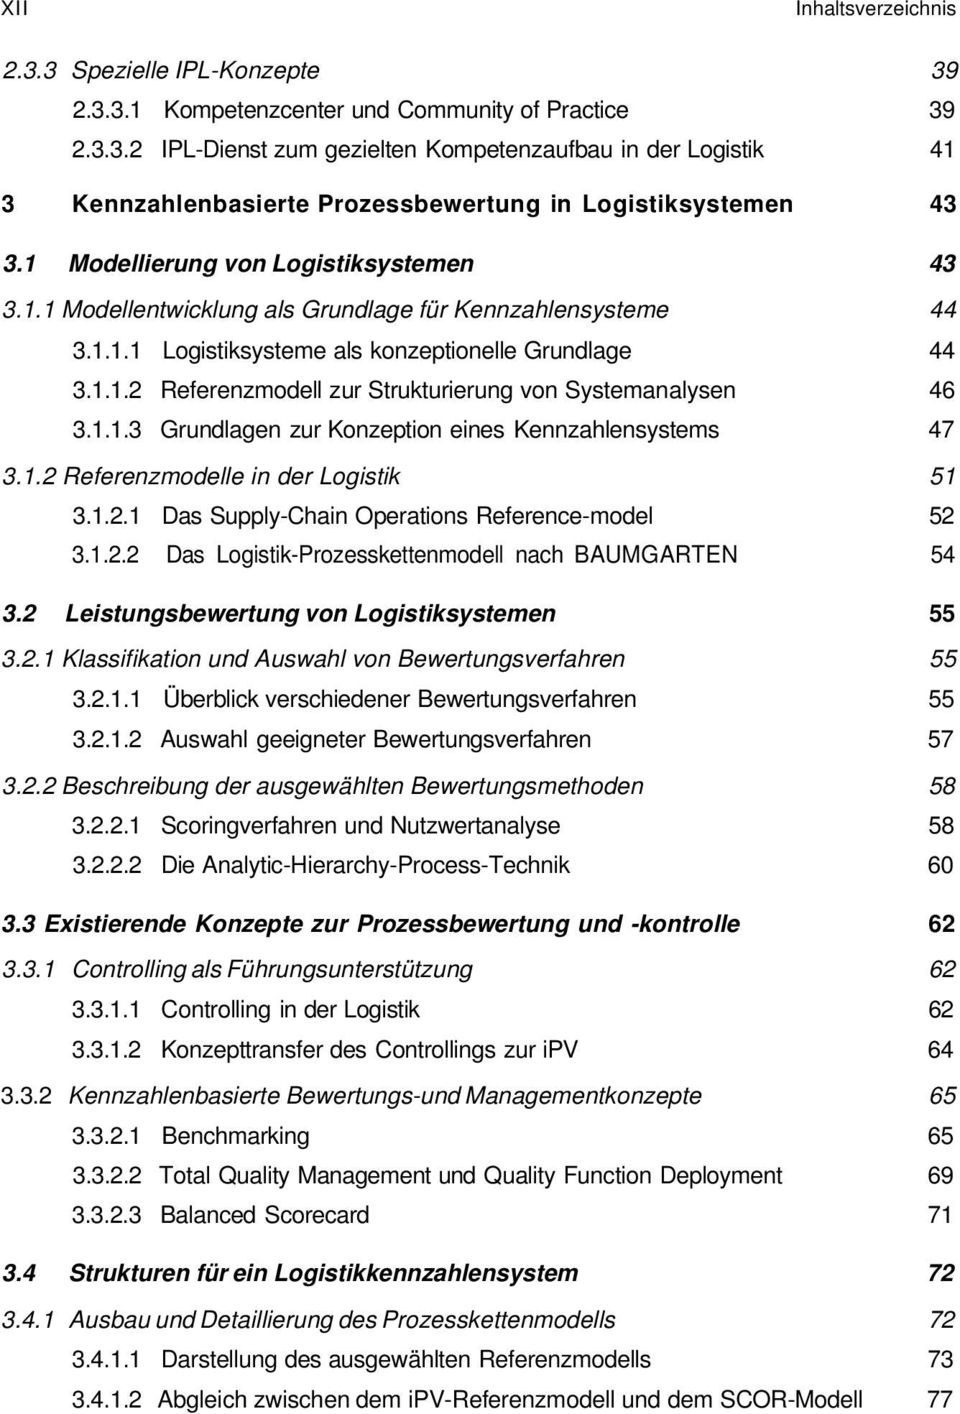 1.1.3 Grundlagen zur Konzeption eines Kennzahlensystems 47 3.1.2 Referenzmodelle in der Logistik 51 3.1.2.1 Das Supply-Chain Operations Reference-model 52 3.1.2.2 Das Logistik-Prozesskettenmodell nach BAUMGARTEN 54 3.